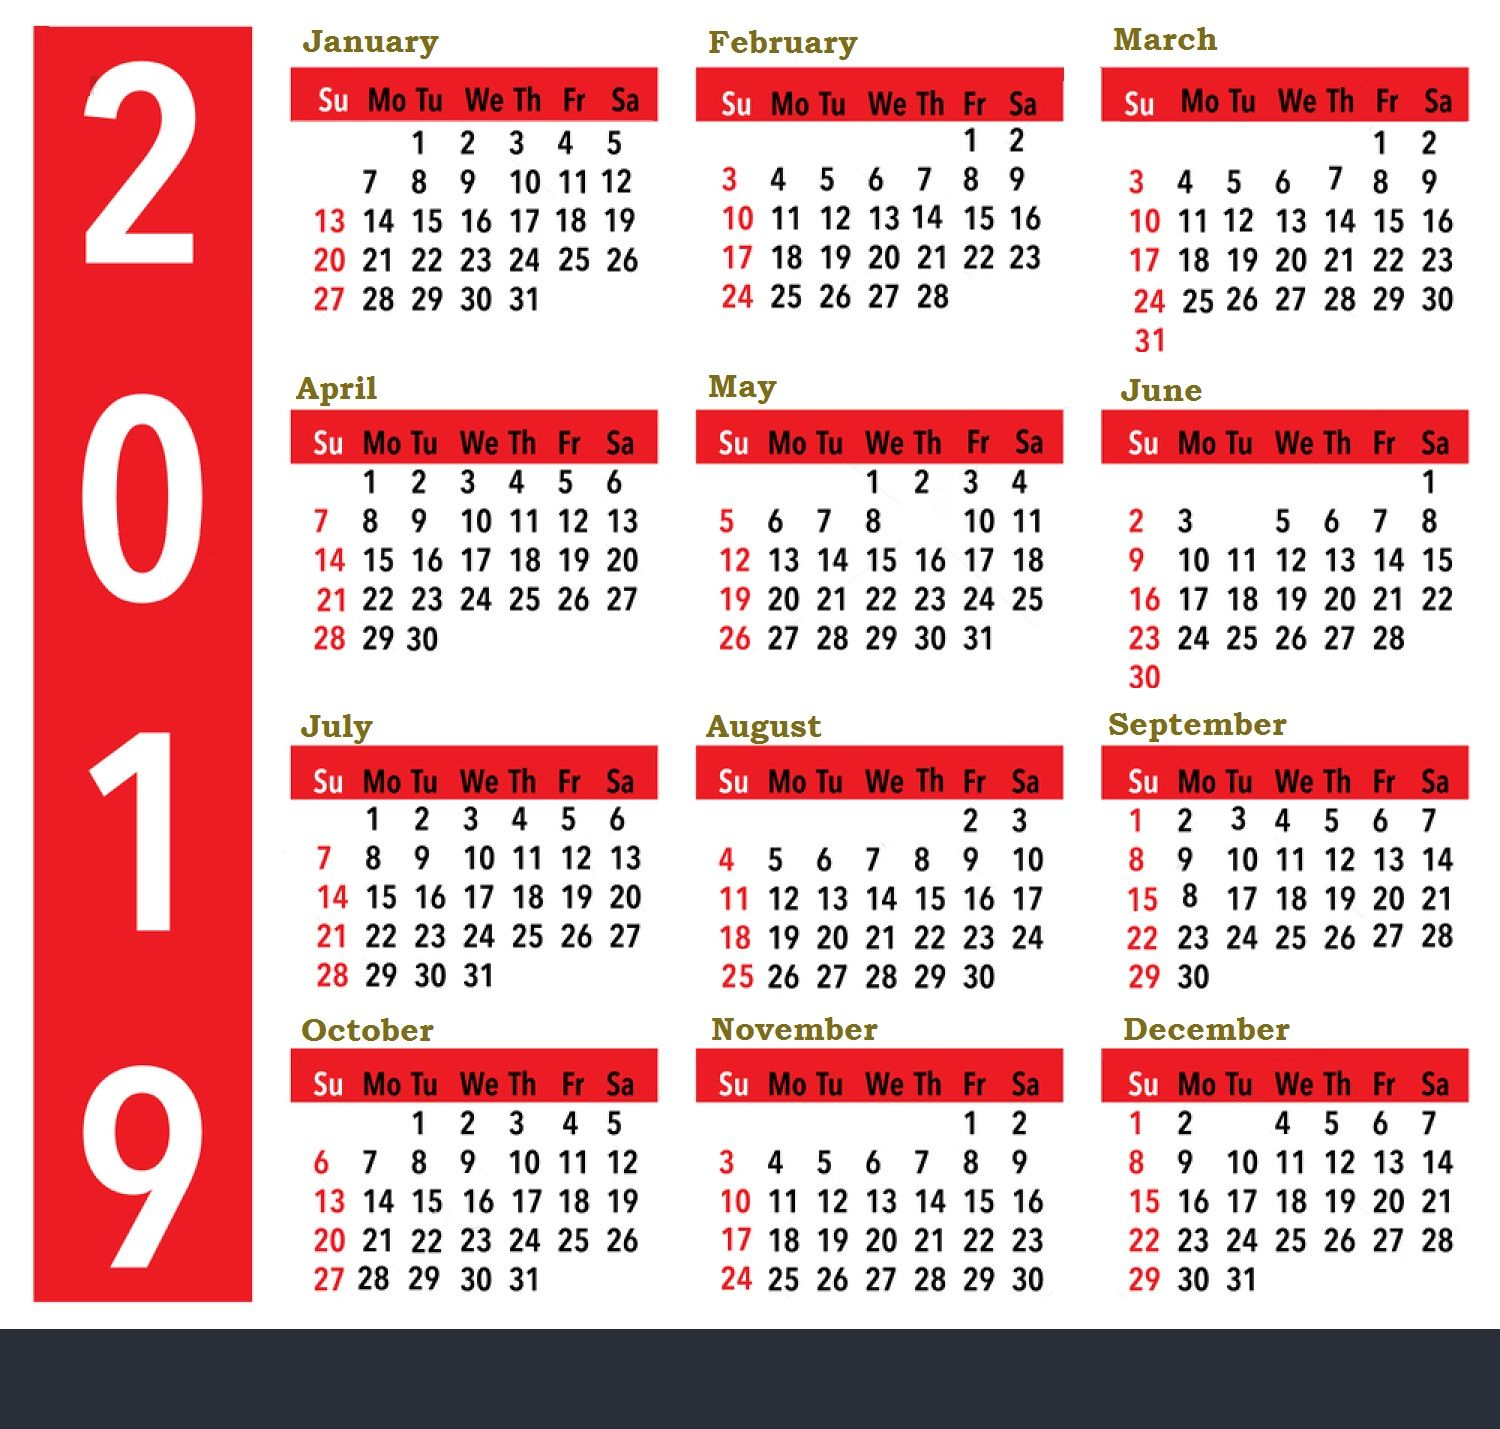 2019 Calendar Dates 2019 Calendar for United States Holidays All Important Dates and